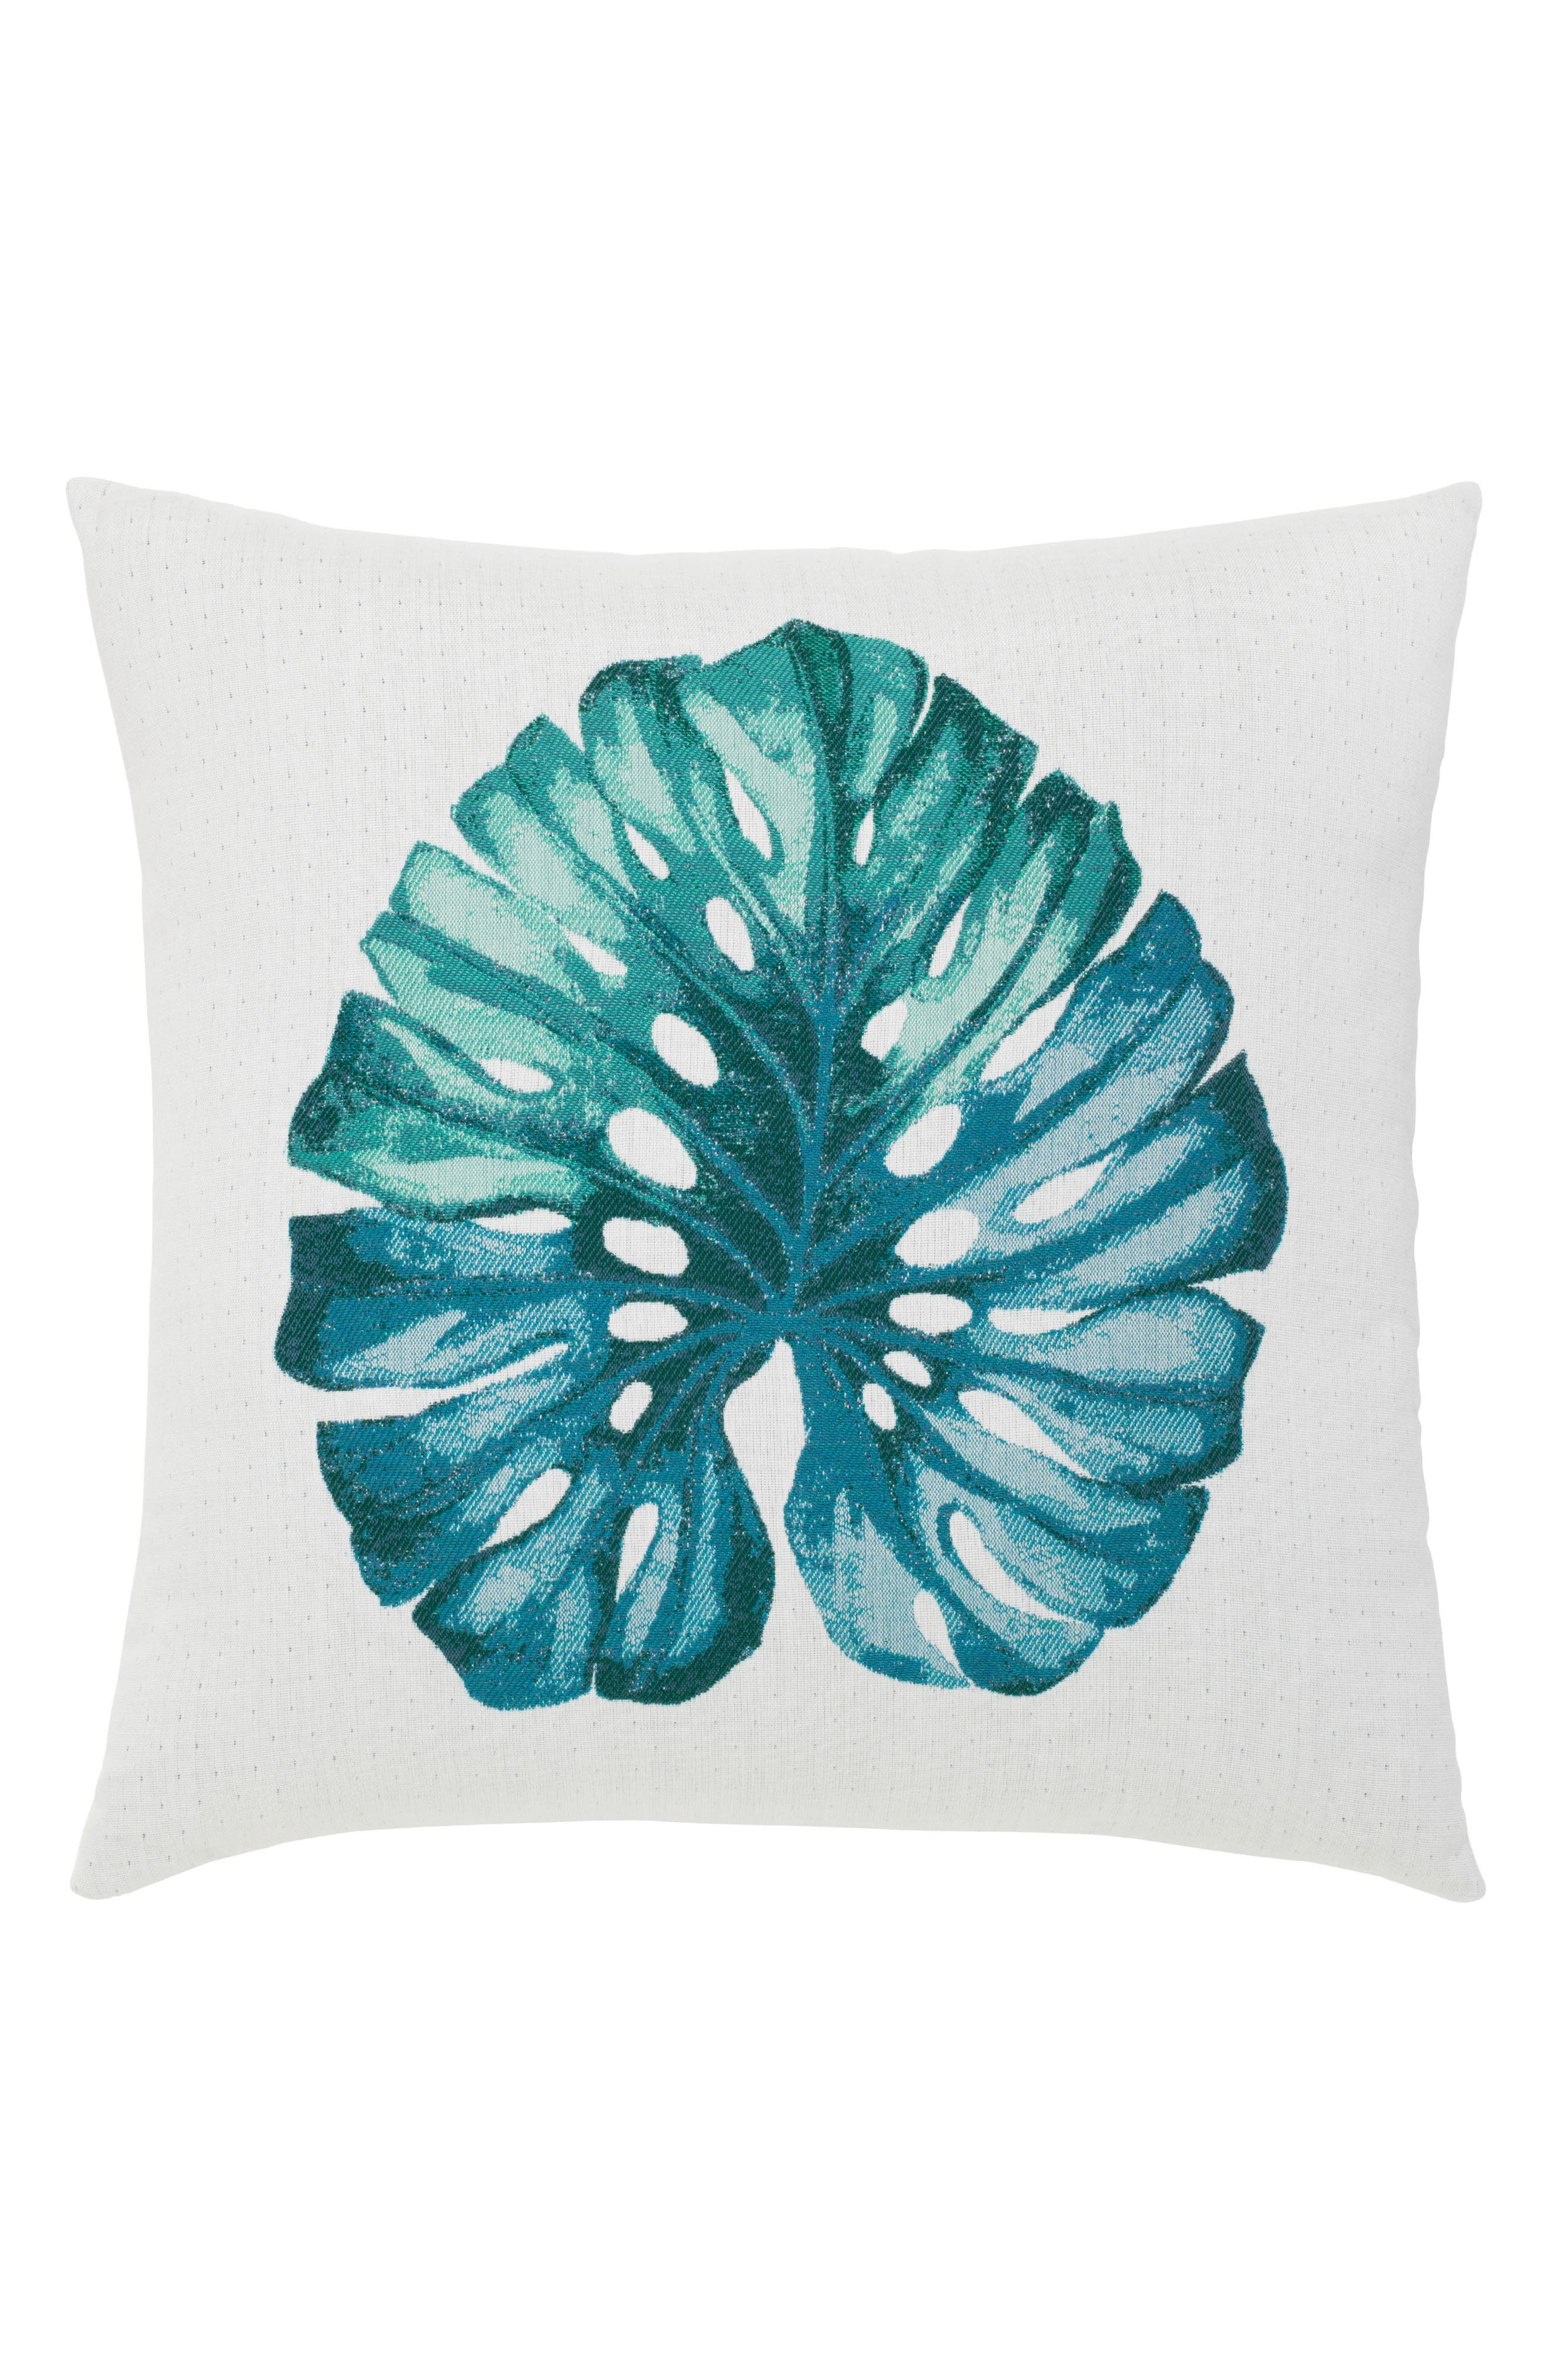 Leaf Lagoon Indoor/Outdoor Accent Pillow,                         Main,                         color, White Blue